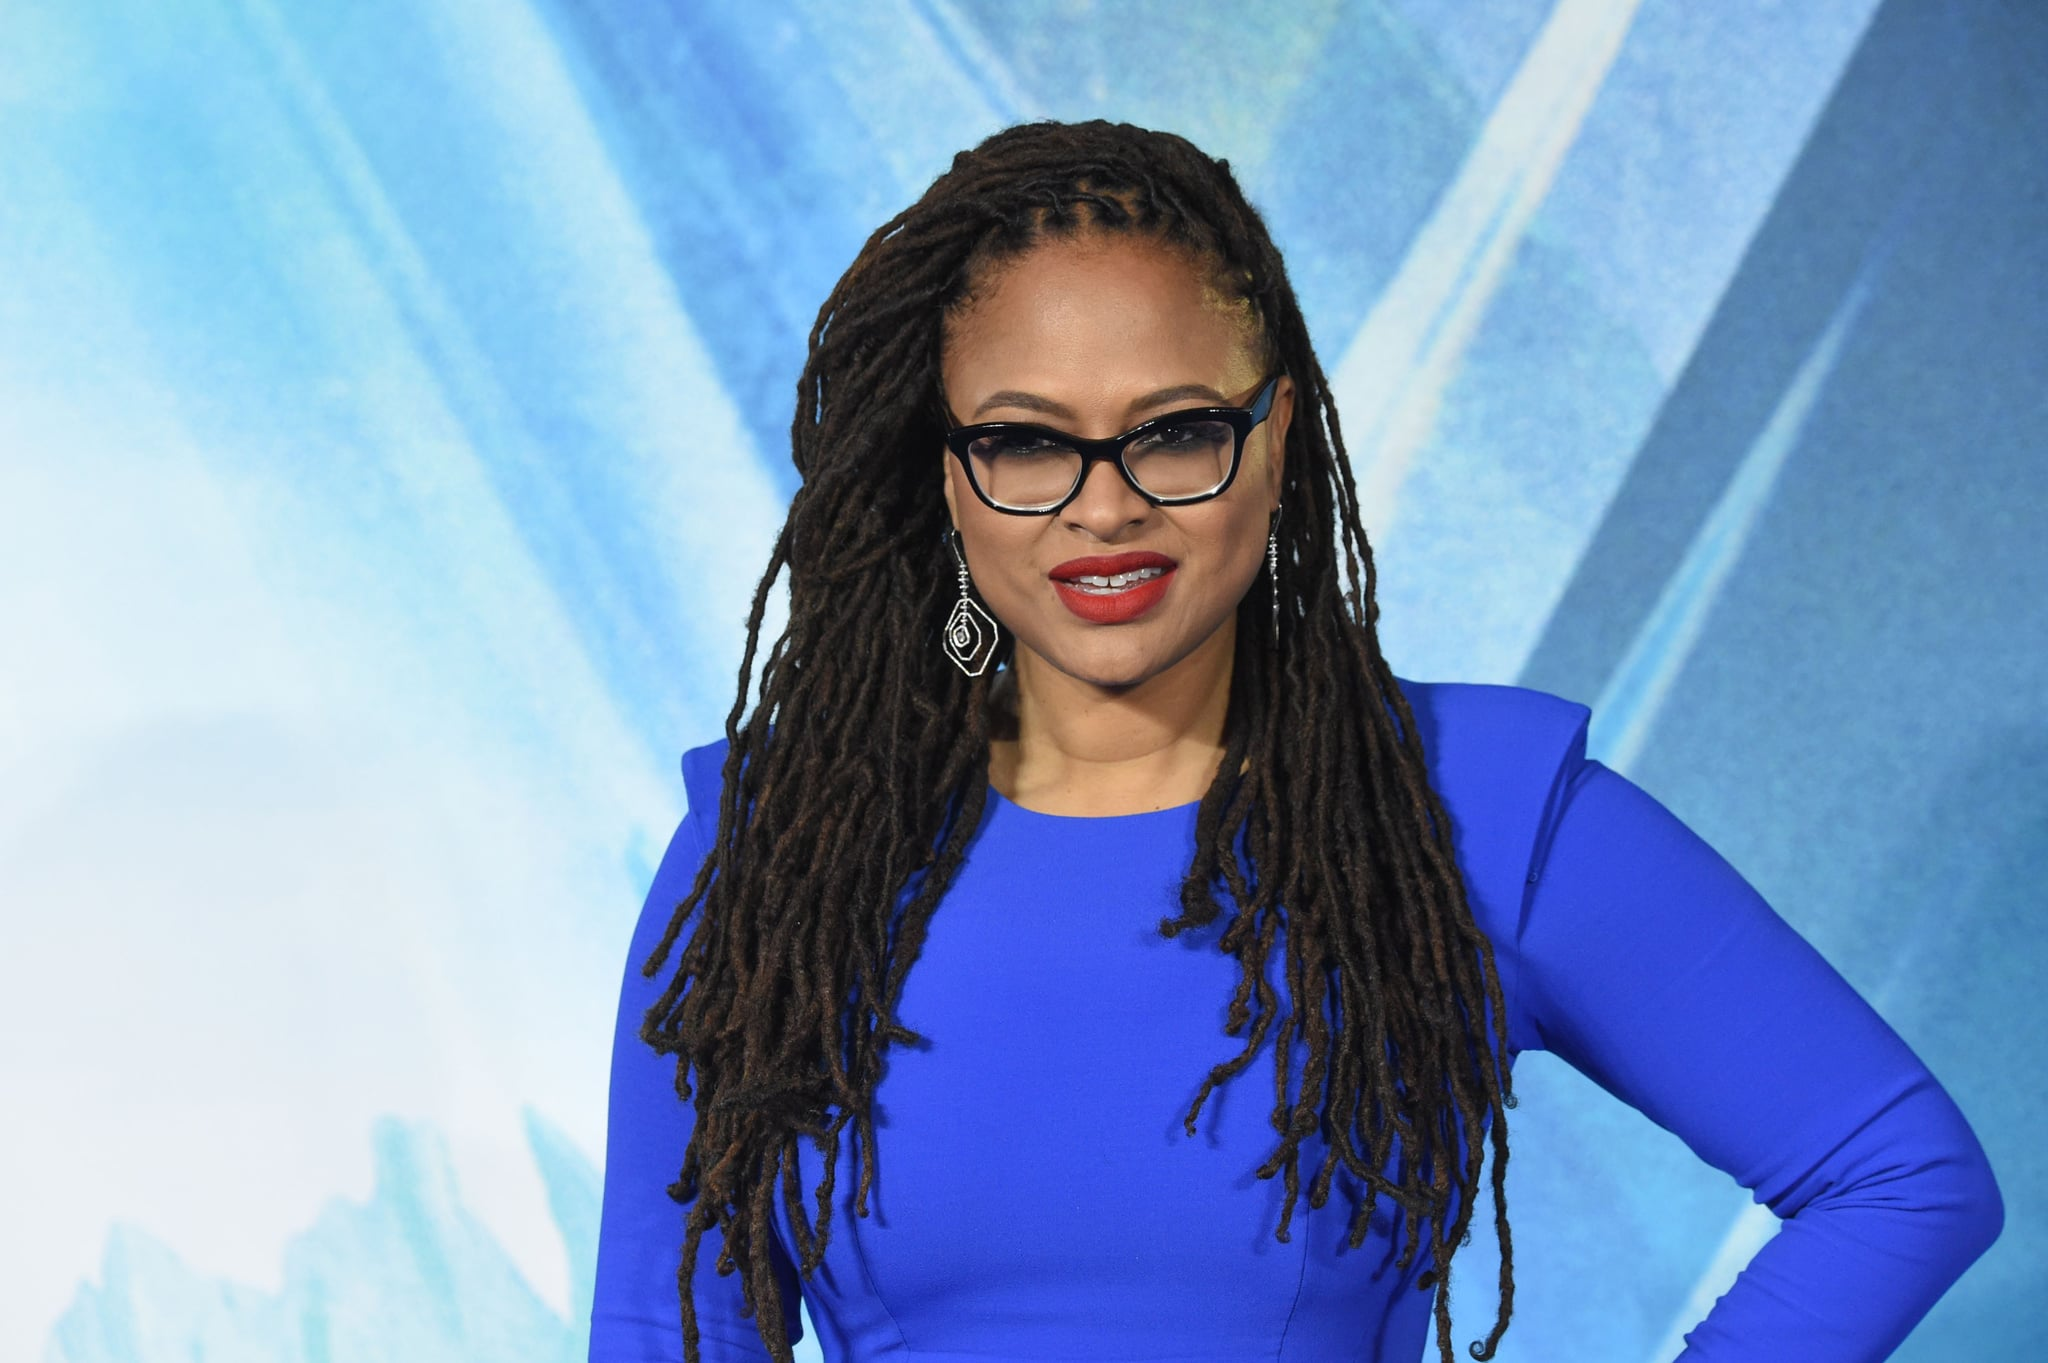 US director Ava Duvernay poses during the European premiere of A Wrinkle in Time in London on March 13, 2018. / AFP PHOTO / Anthony HARVEY        (Photo credit should read ANTHONY HARVEY/AFP/Getty Images)